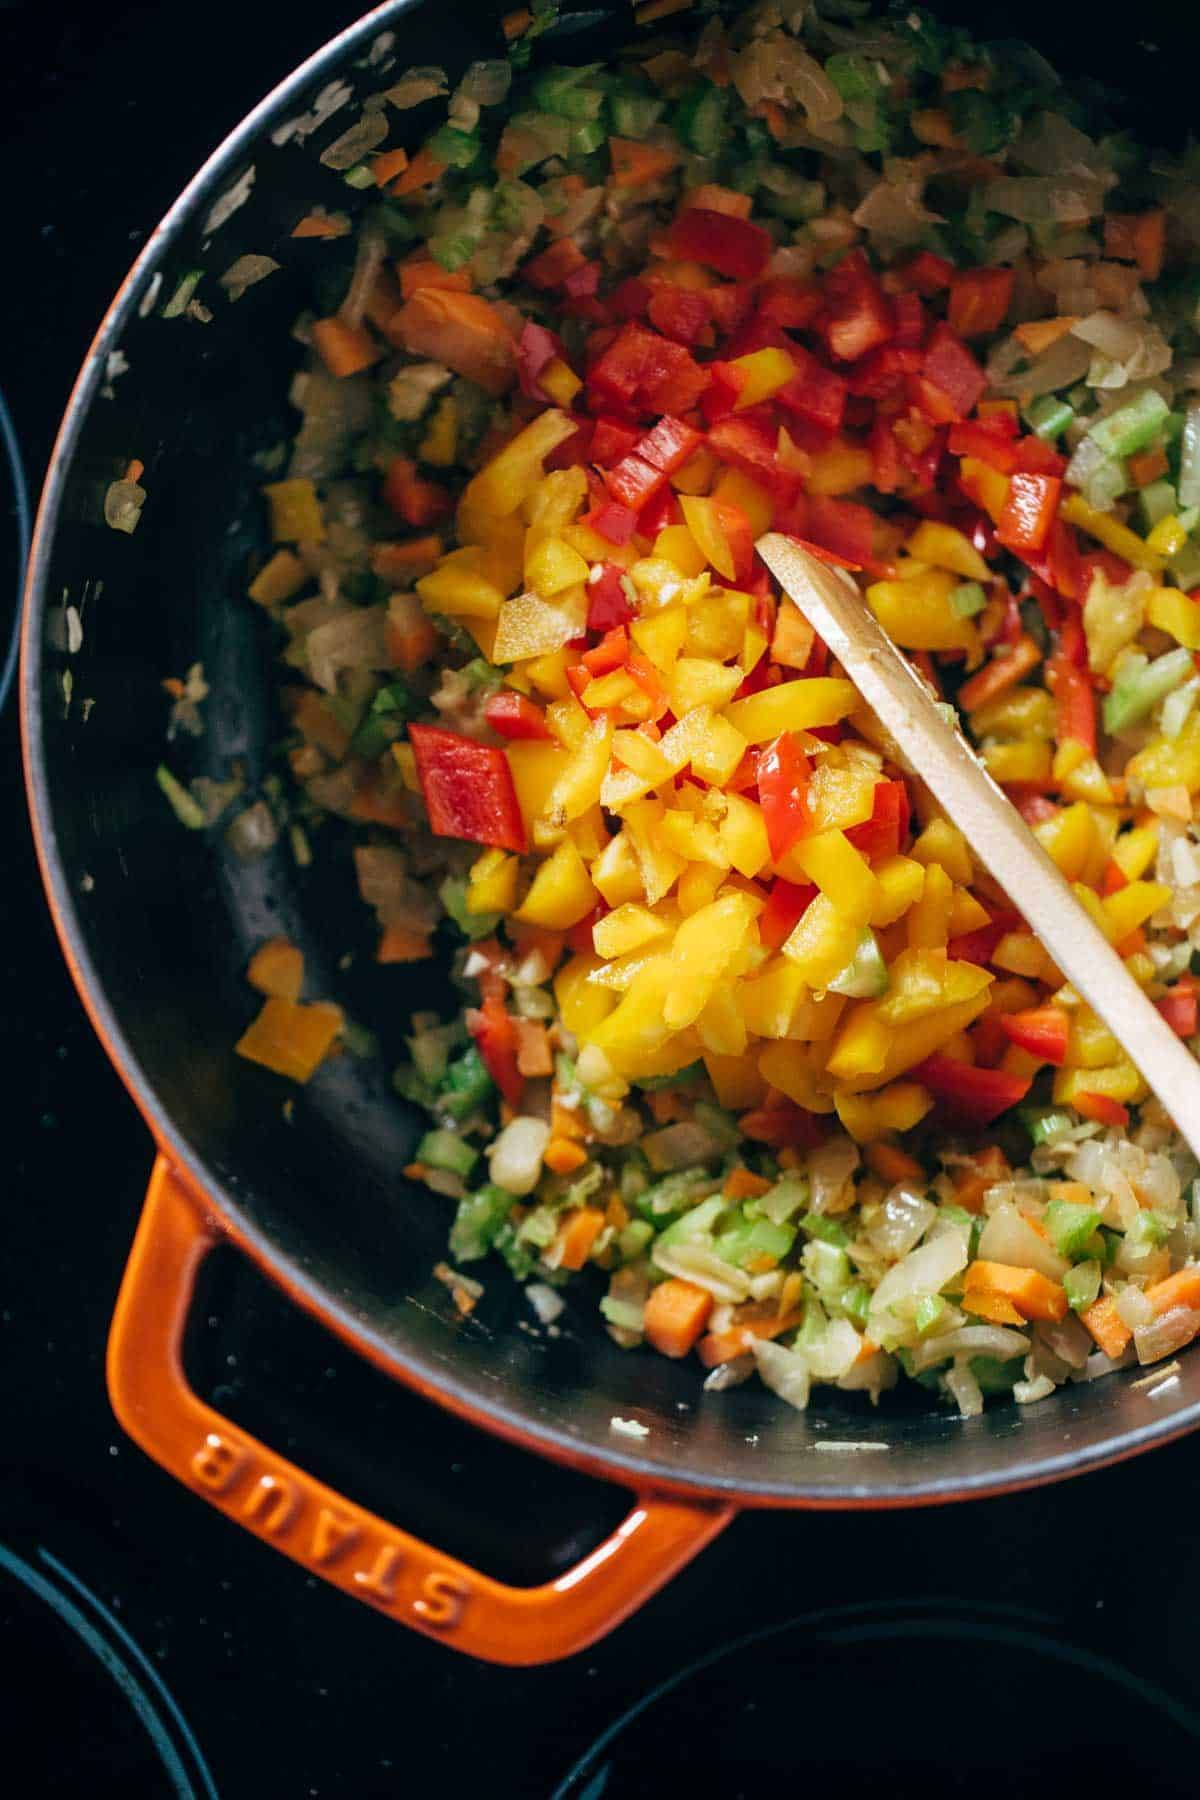 Mirepoix and Vegetables for the Gumbo | pinchofyum.com